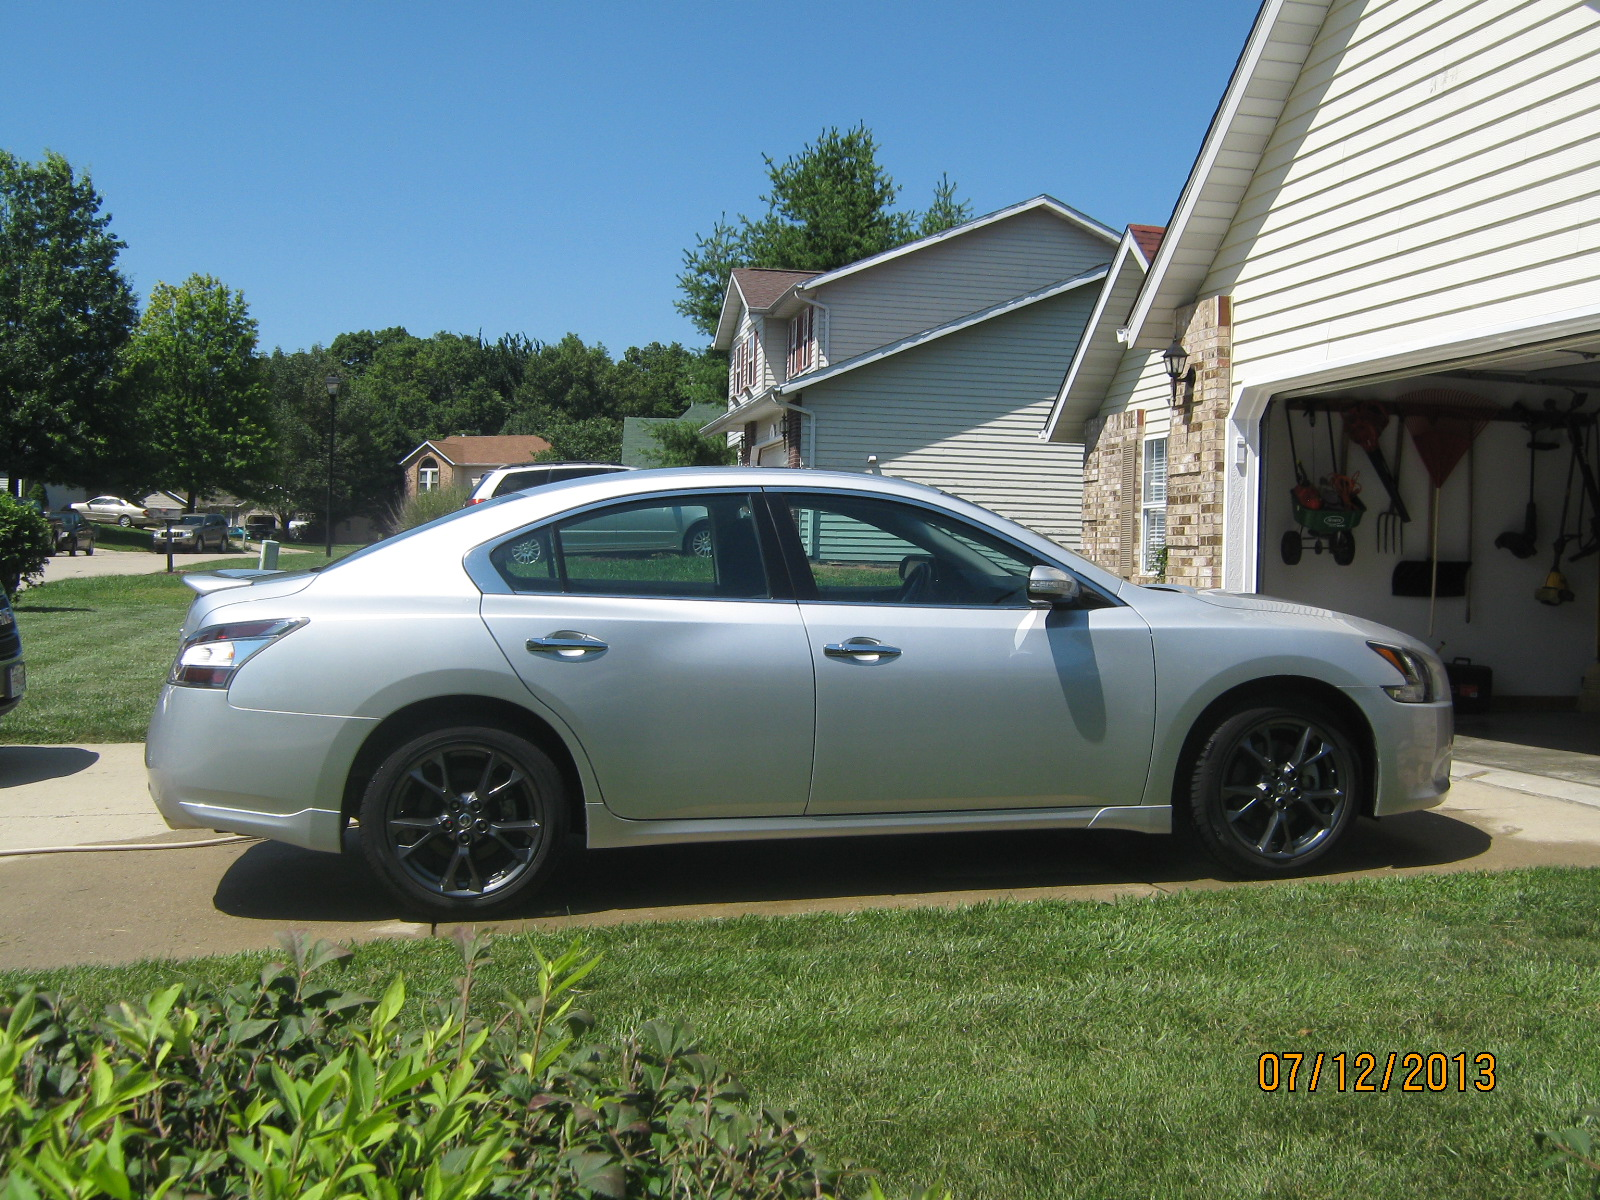 File 2009 Nissan Maxima SV also Nissan Maxima Lowered together with 2014 as well 2014 Nissan Sunny New Car Review furthermore 2010 Nissan Maxima. on 2013 nissan maxima sv